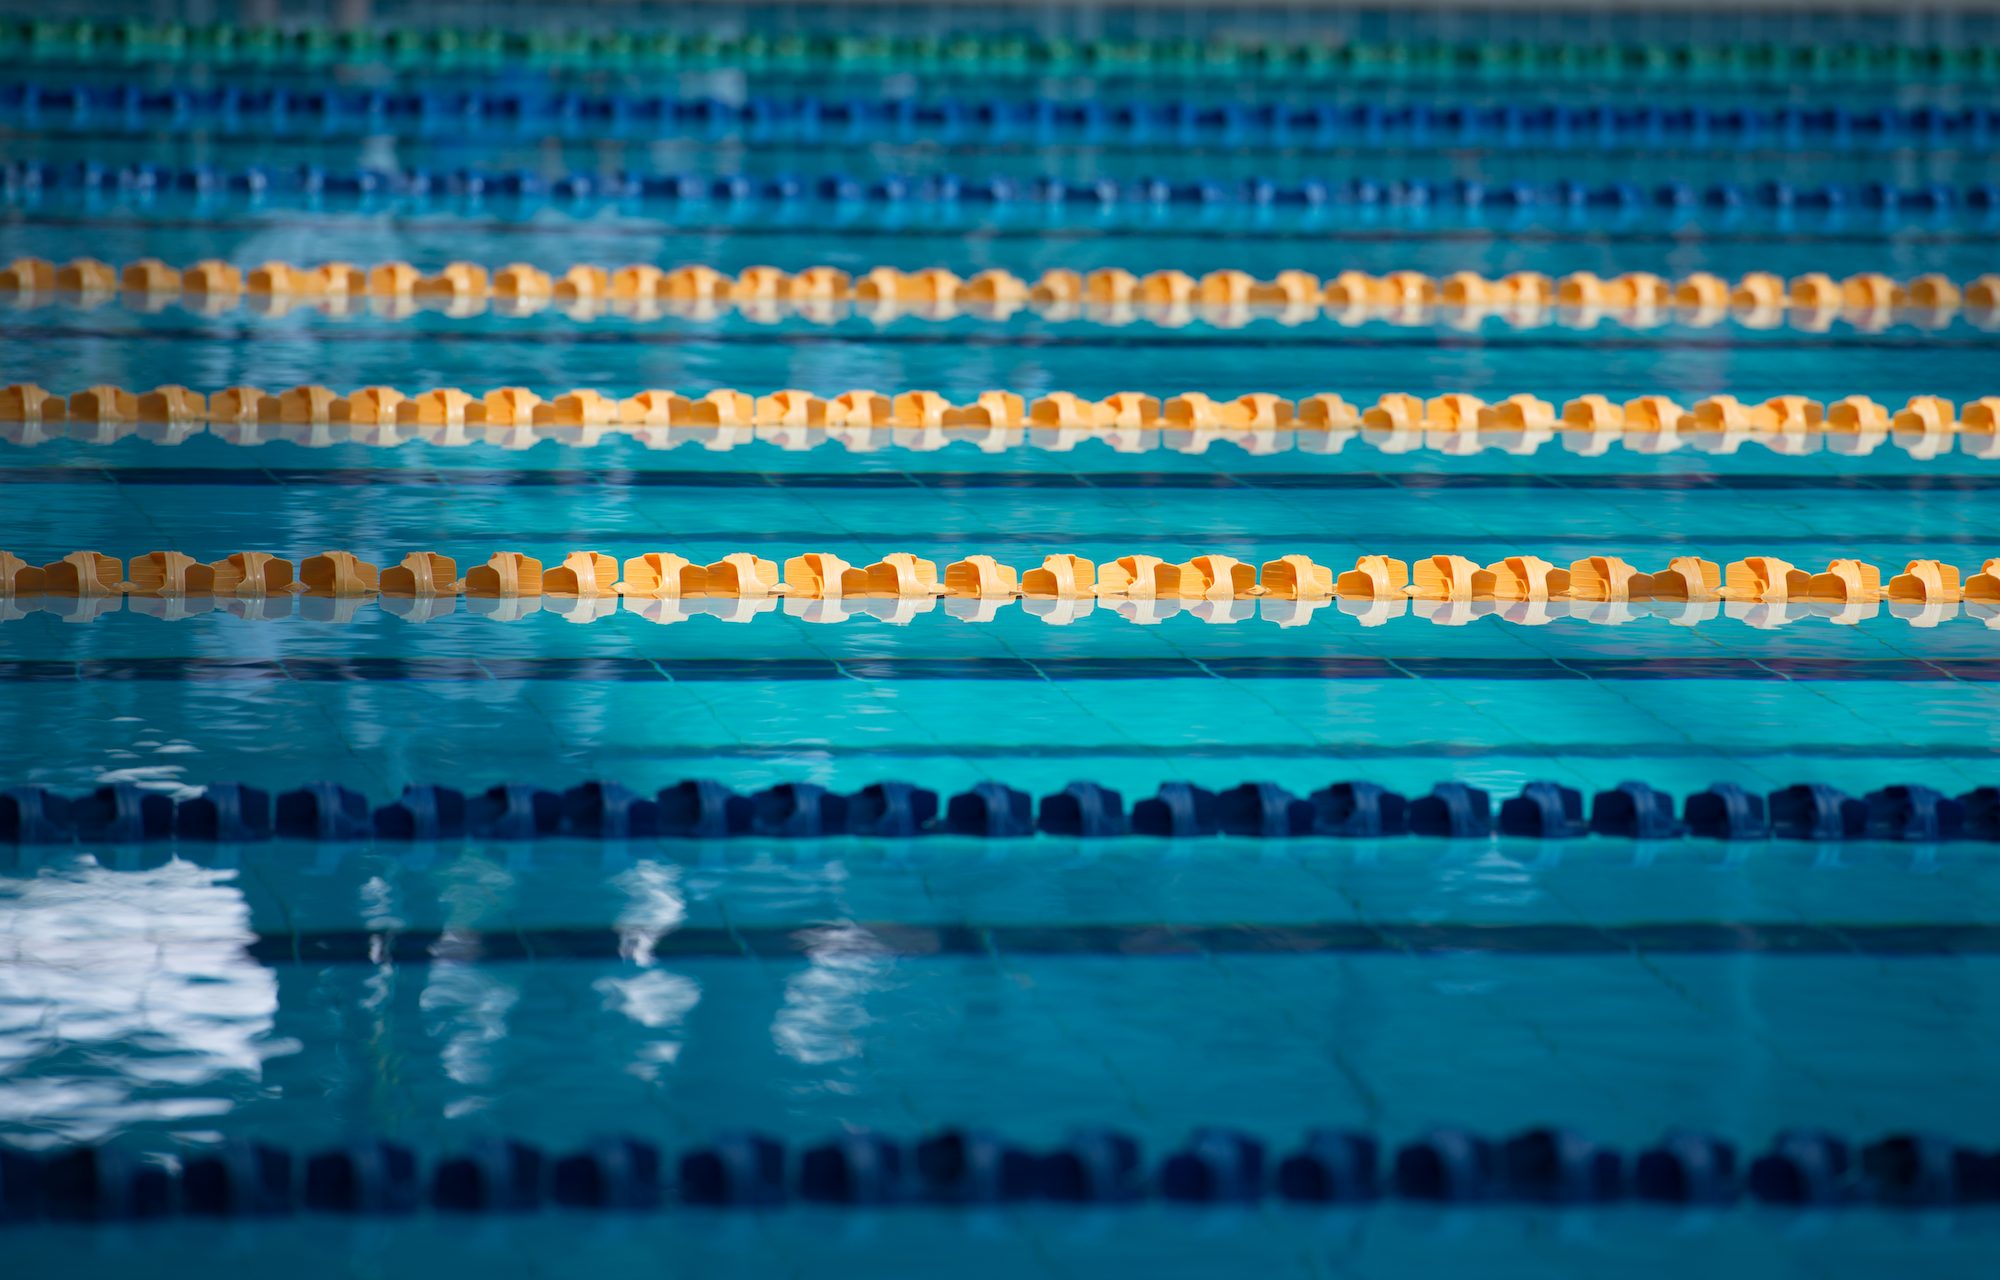 swimming finals photo essay raffles press joanna chue